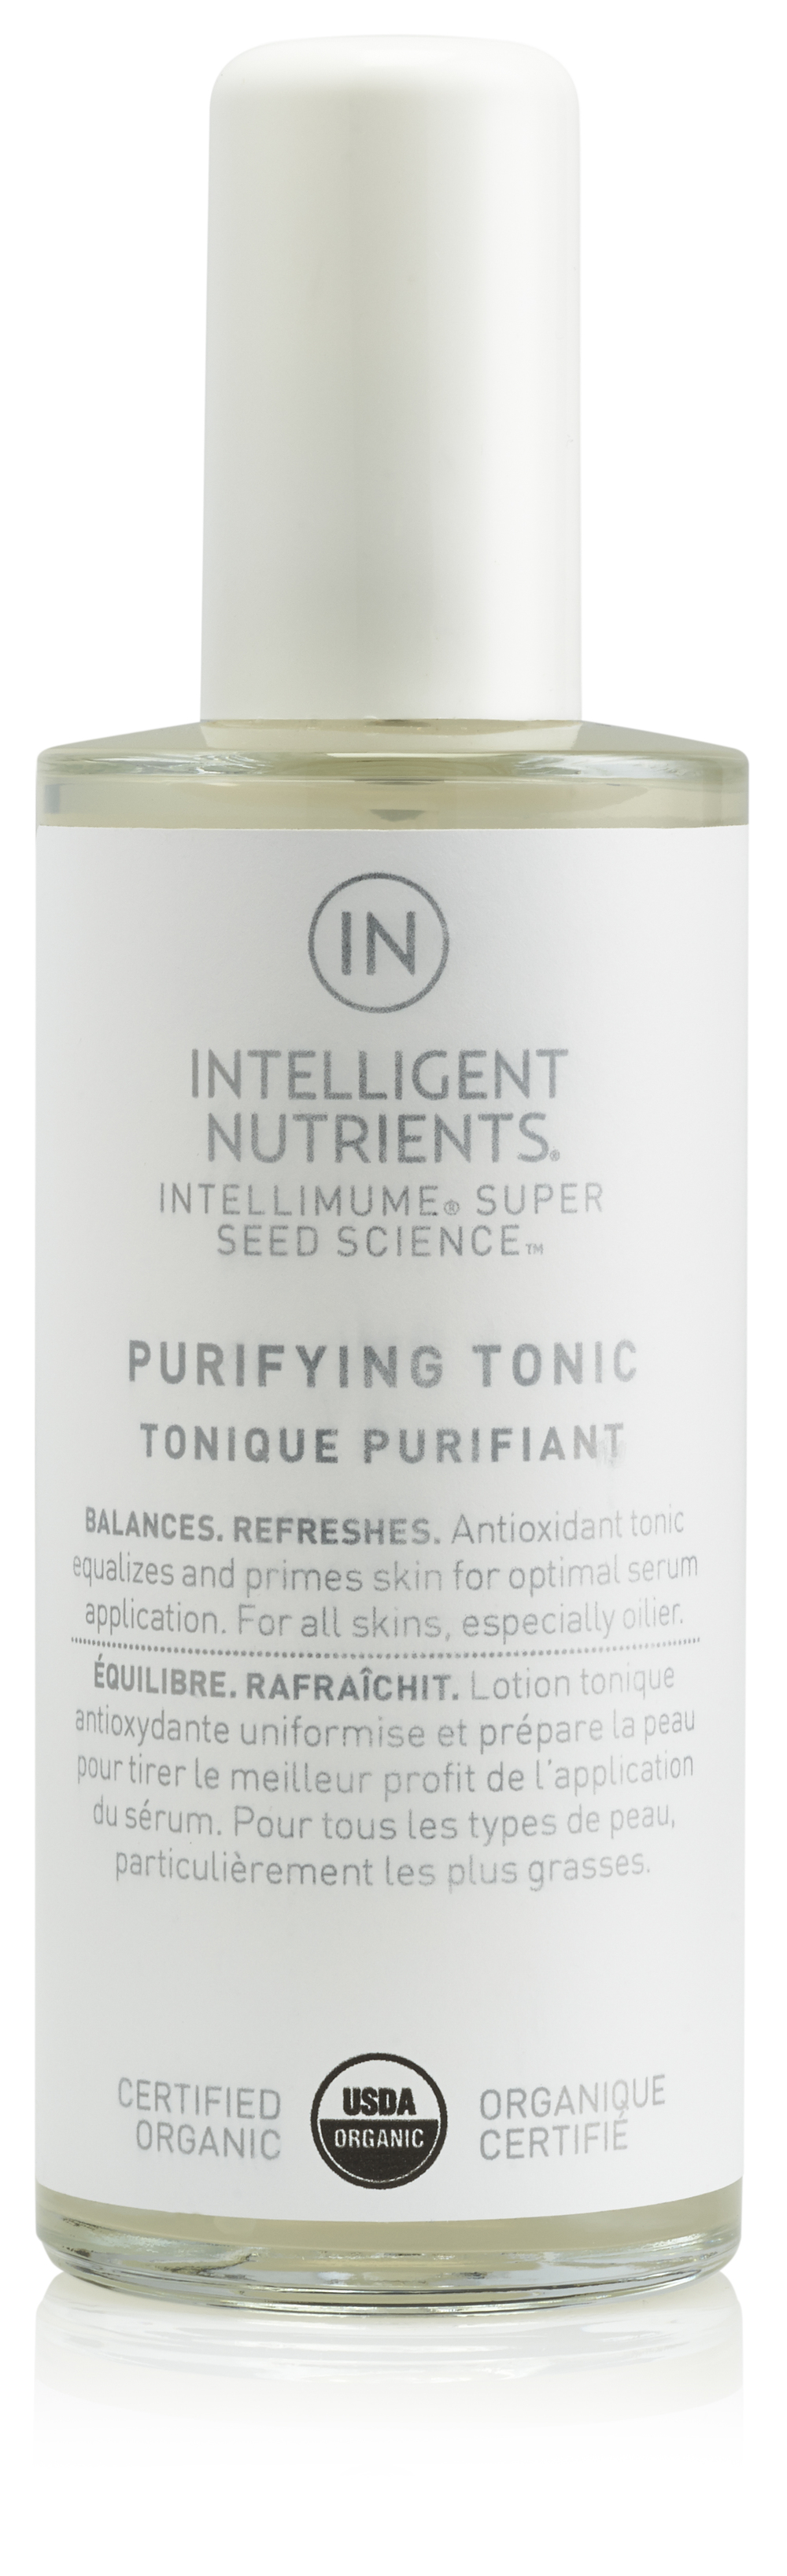 Purifying Tonic (DKK305/50ml)